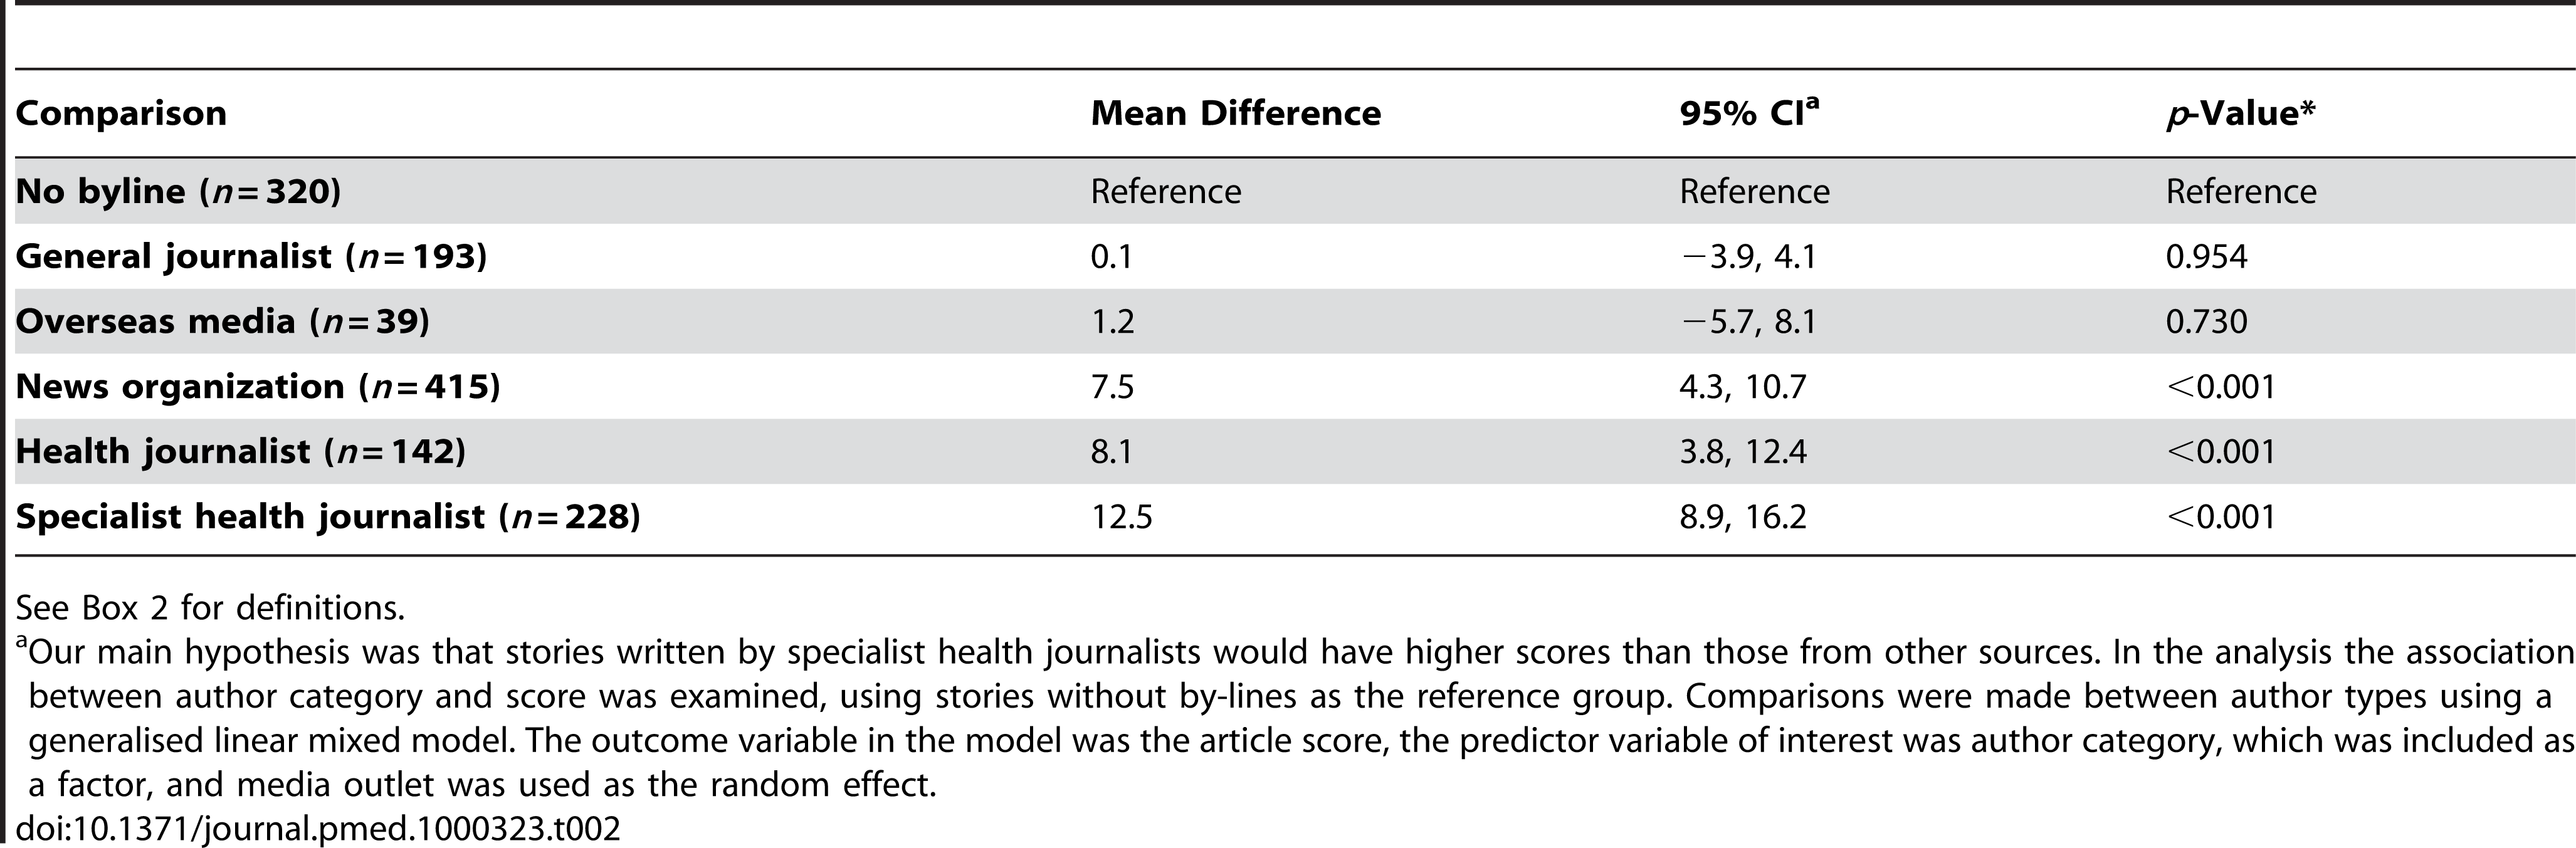 Comparisons of Media Doctor scores for stories written by different categories of journalists.